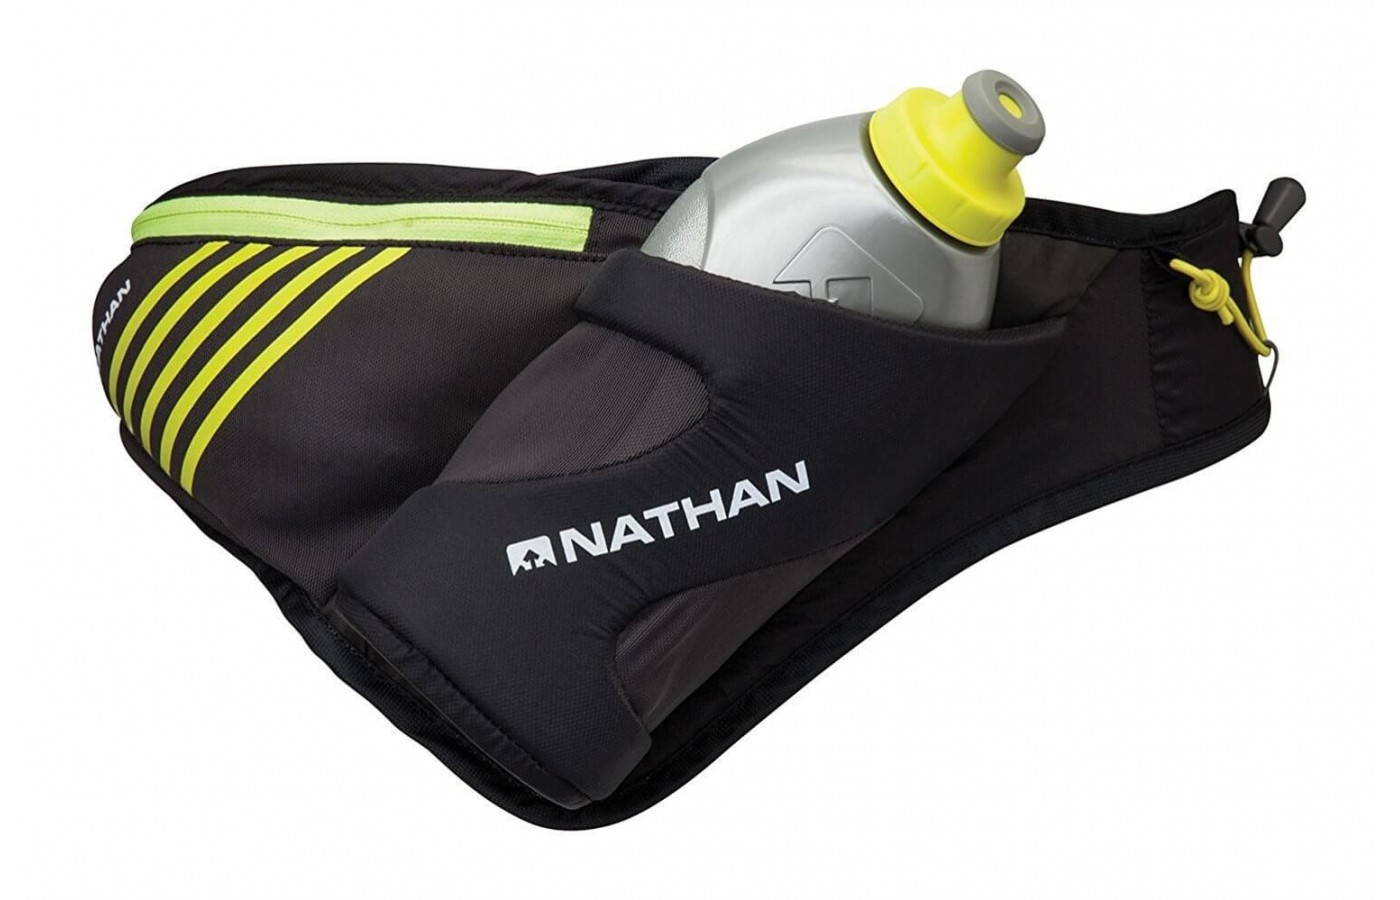 Nathan Peak Waist Pack is a great option for easy access hydration on the run.